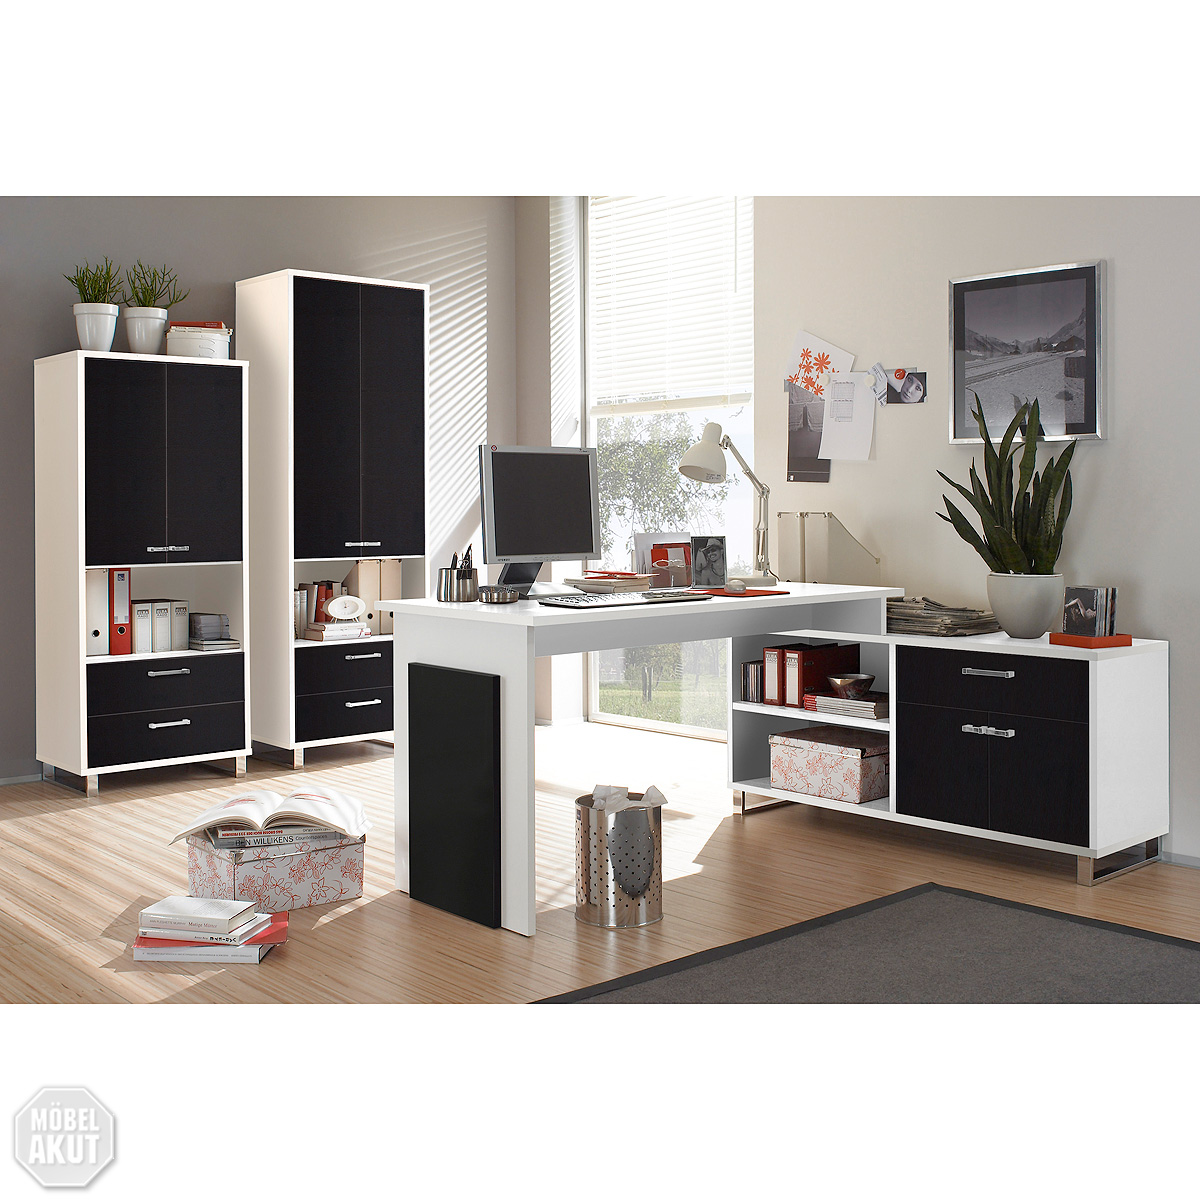 b ro set manager manga schreibtisch pc tisch aktenschrank schwarz wei ebay. Black Bedroom Furniture Sets. Home Design Ideas